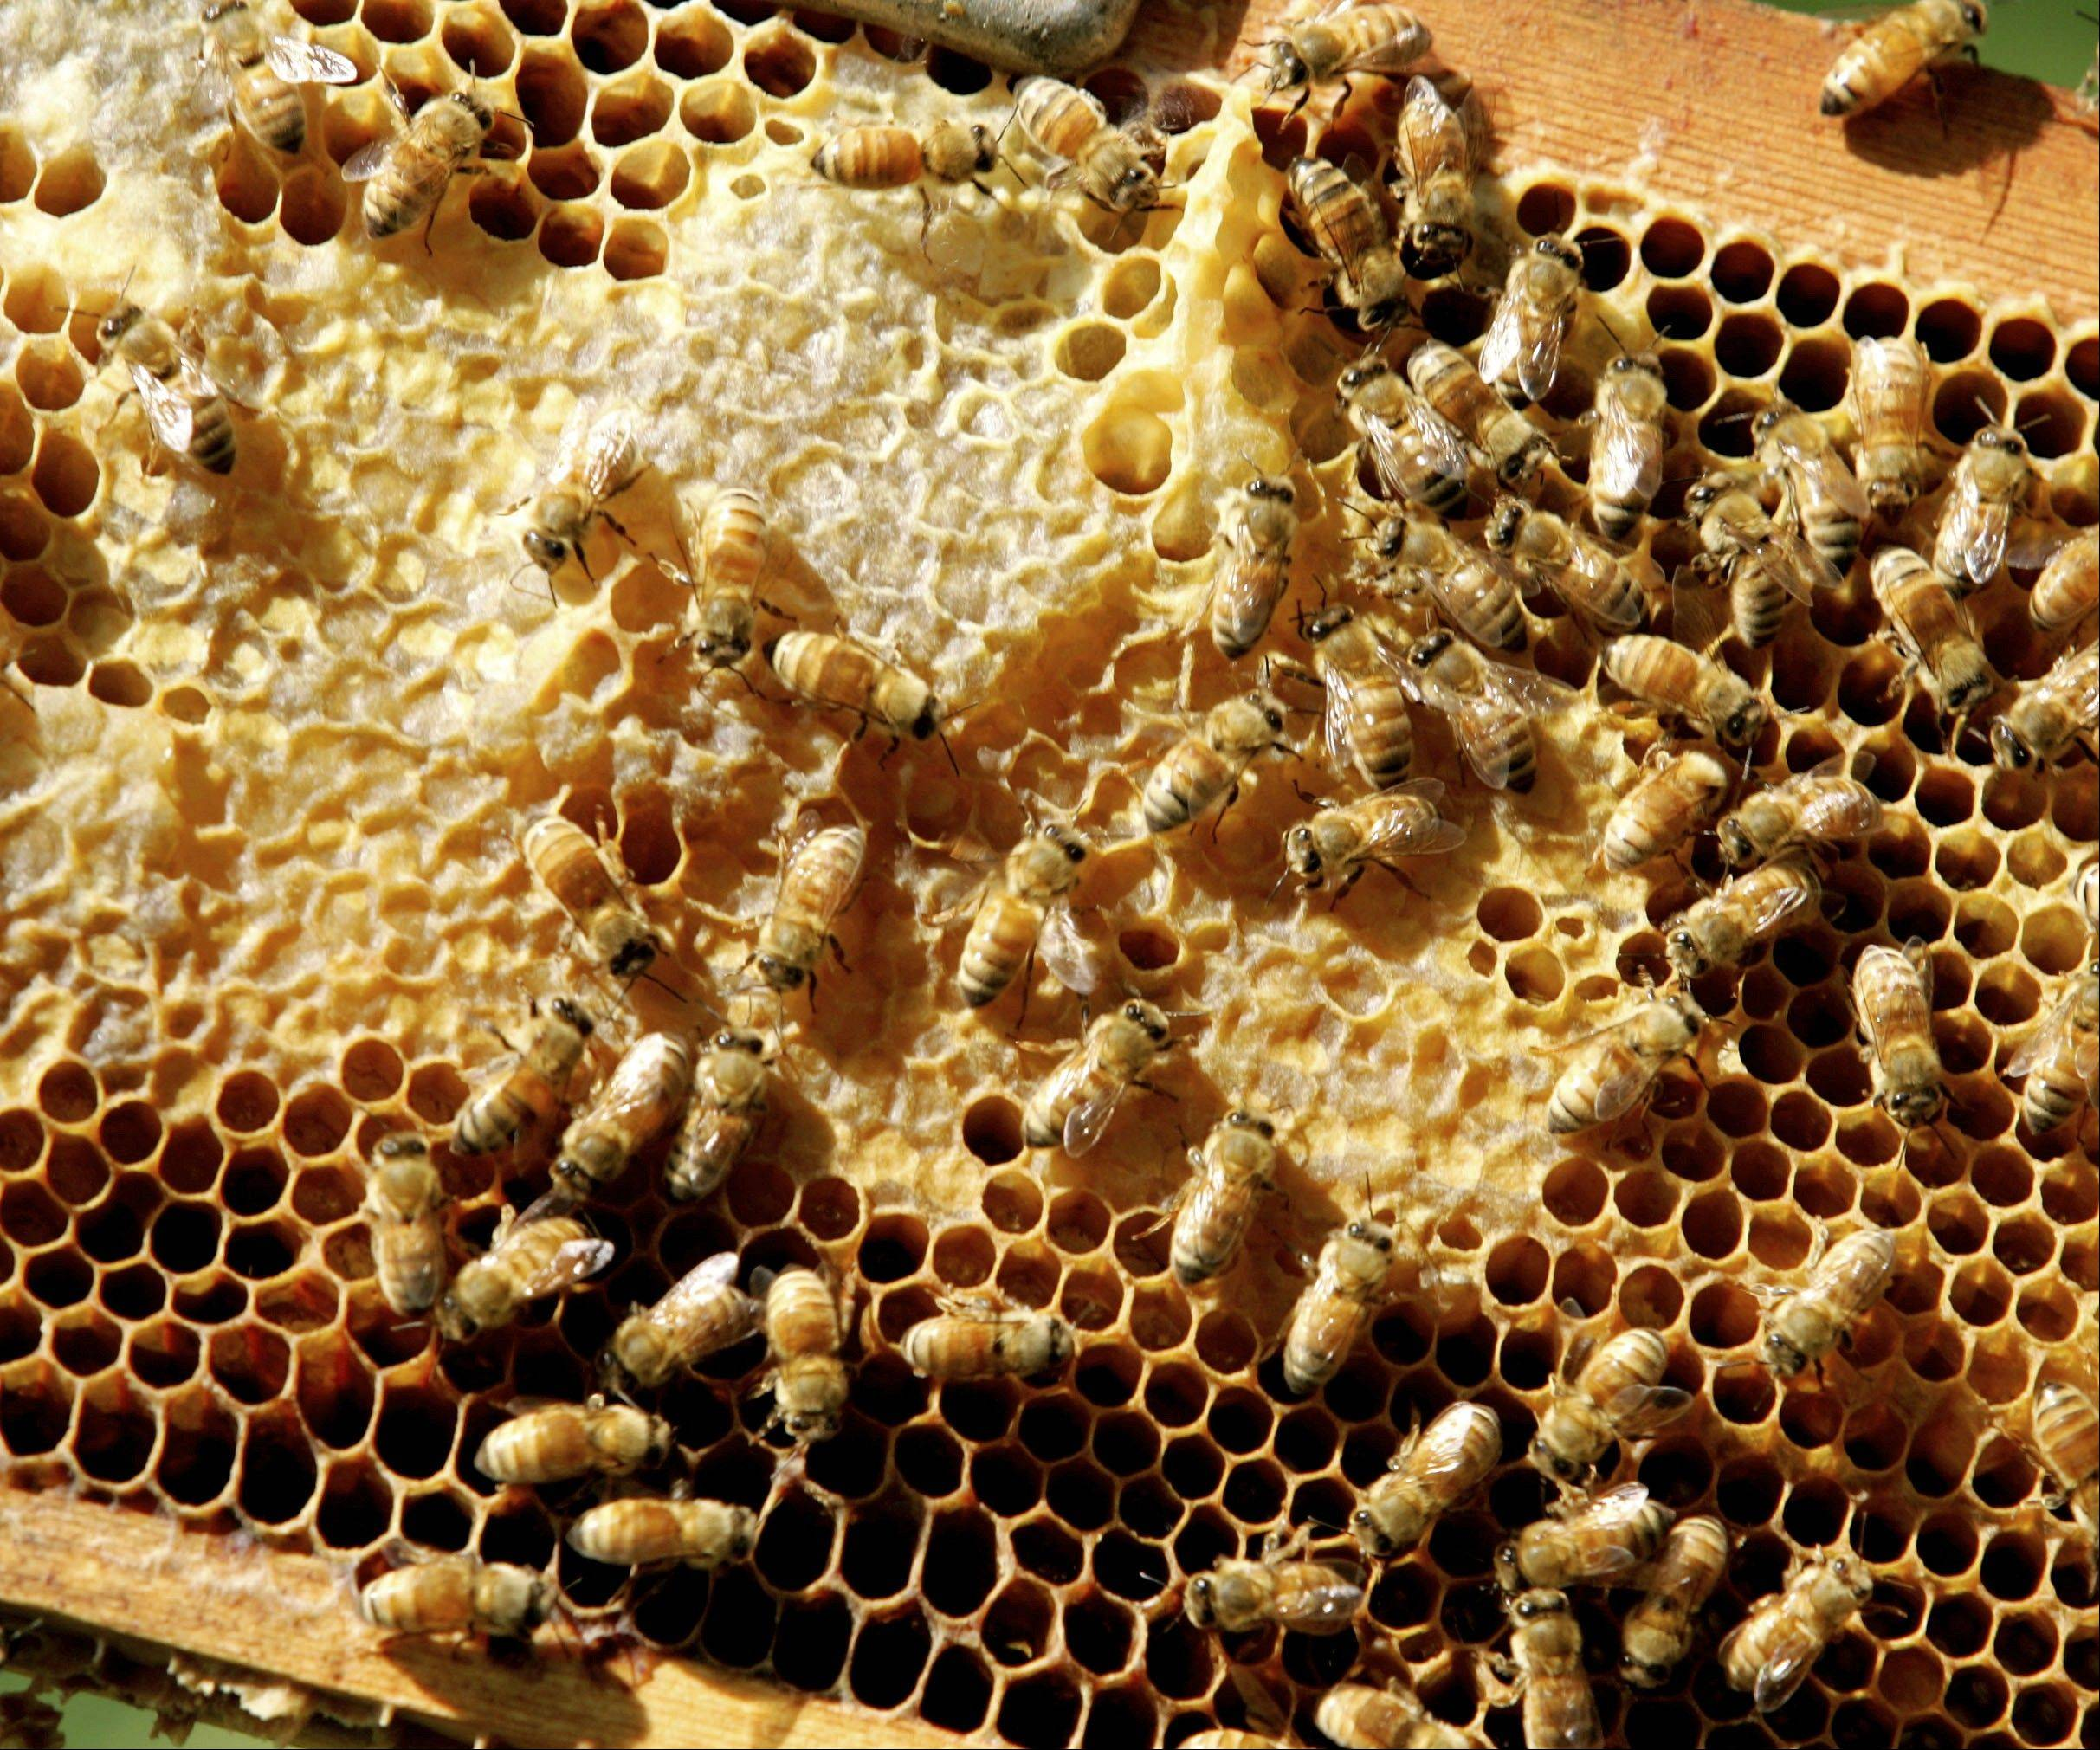 Learn about the state of bees in McHenry County at the next meeting of the Green Drinks McHenry County on Wednesday, March 6.